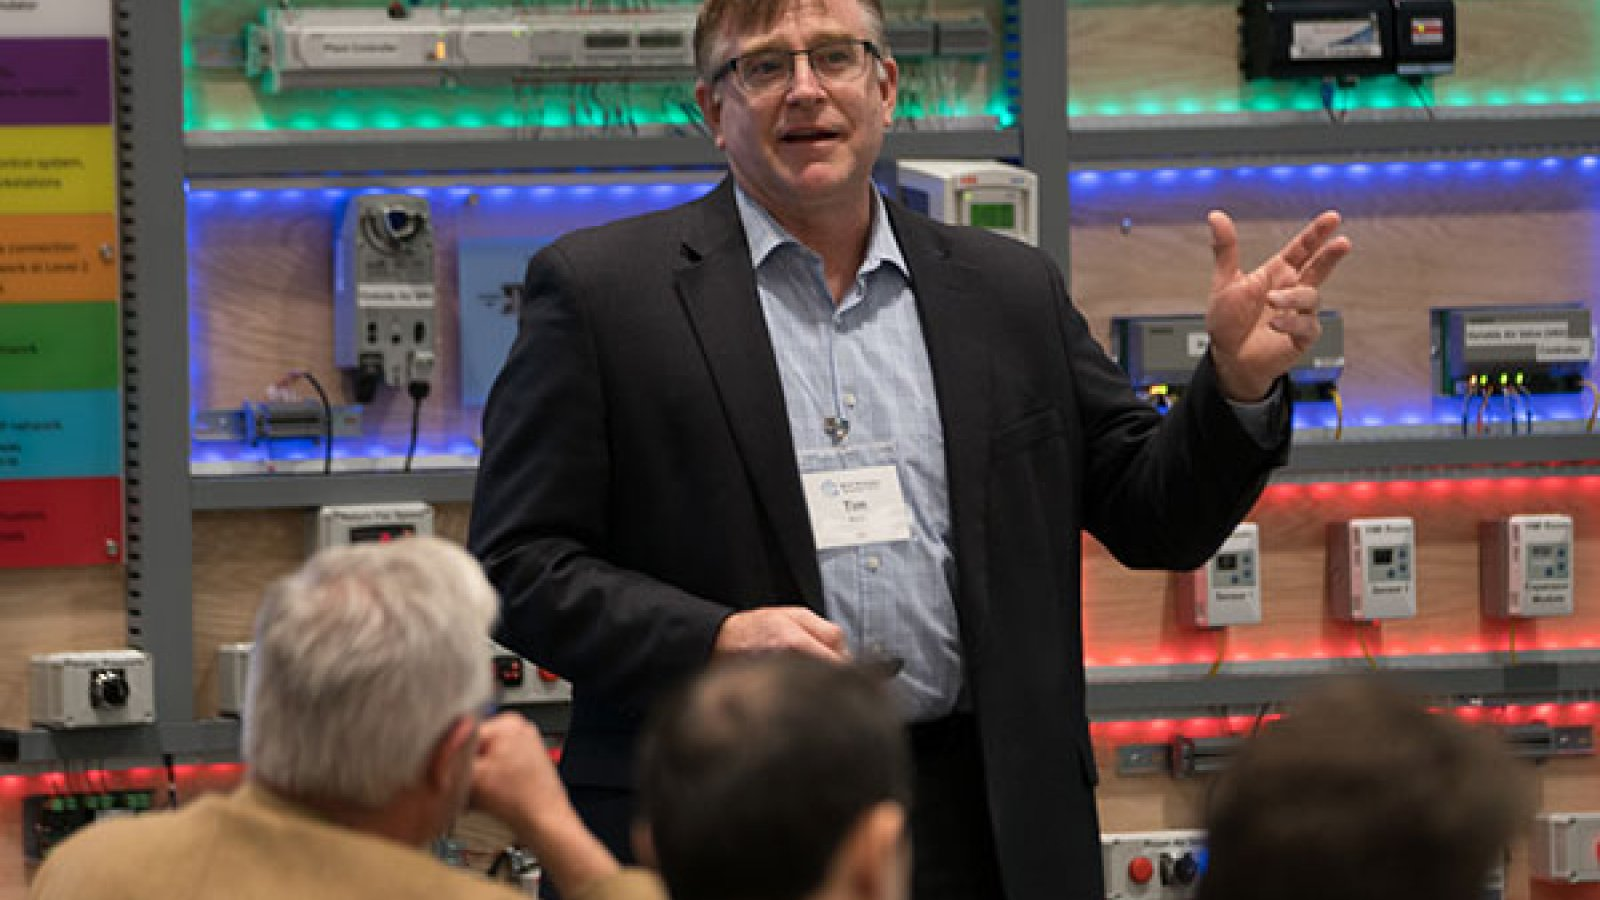 """Timothy Koch, vice president and engineering principal at HDR Inc., discusses """"Industry Challenges - Design, Construction and Operation of SBIoT Systems"""" during the Smart Building and Internet of Things workshop on Nov. 9 at Scott Conference Center."""